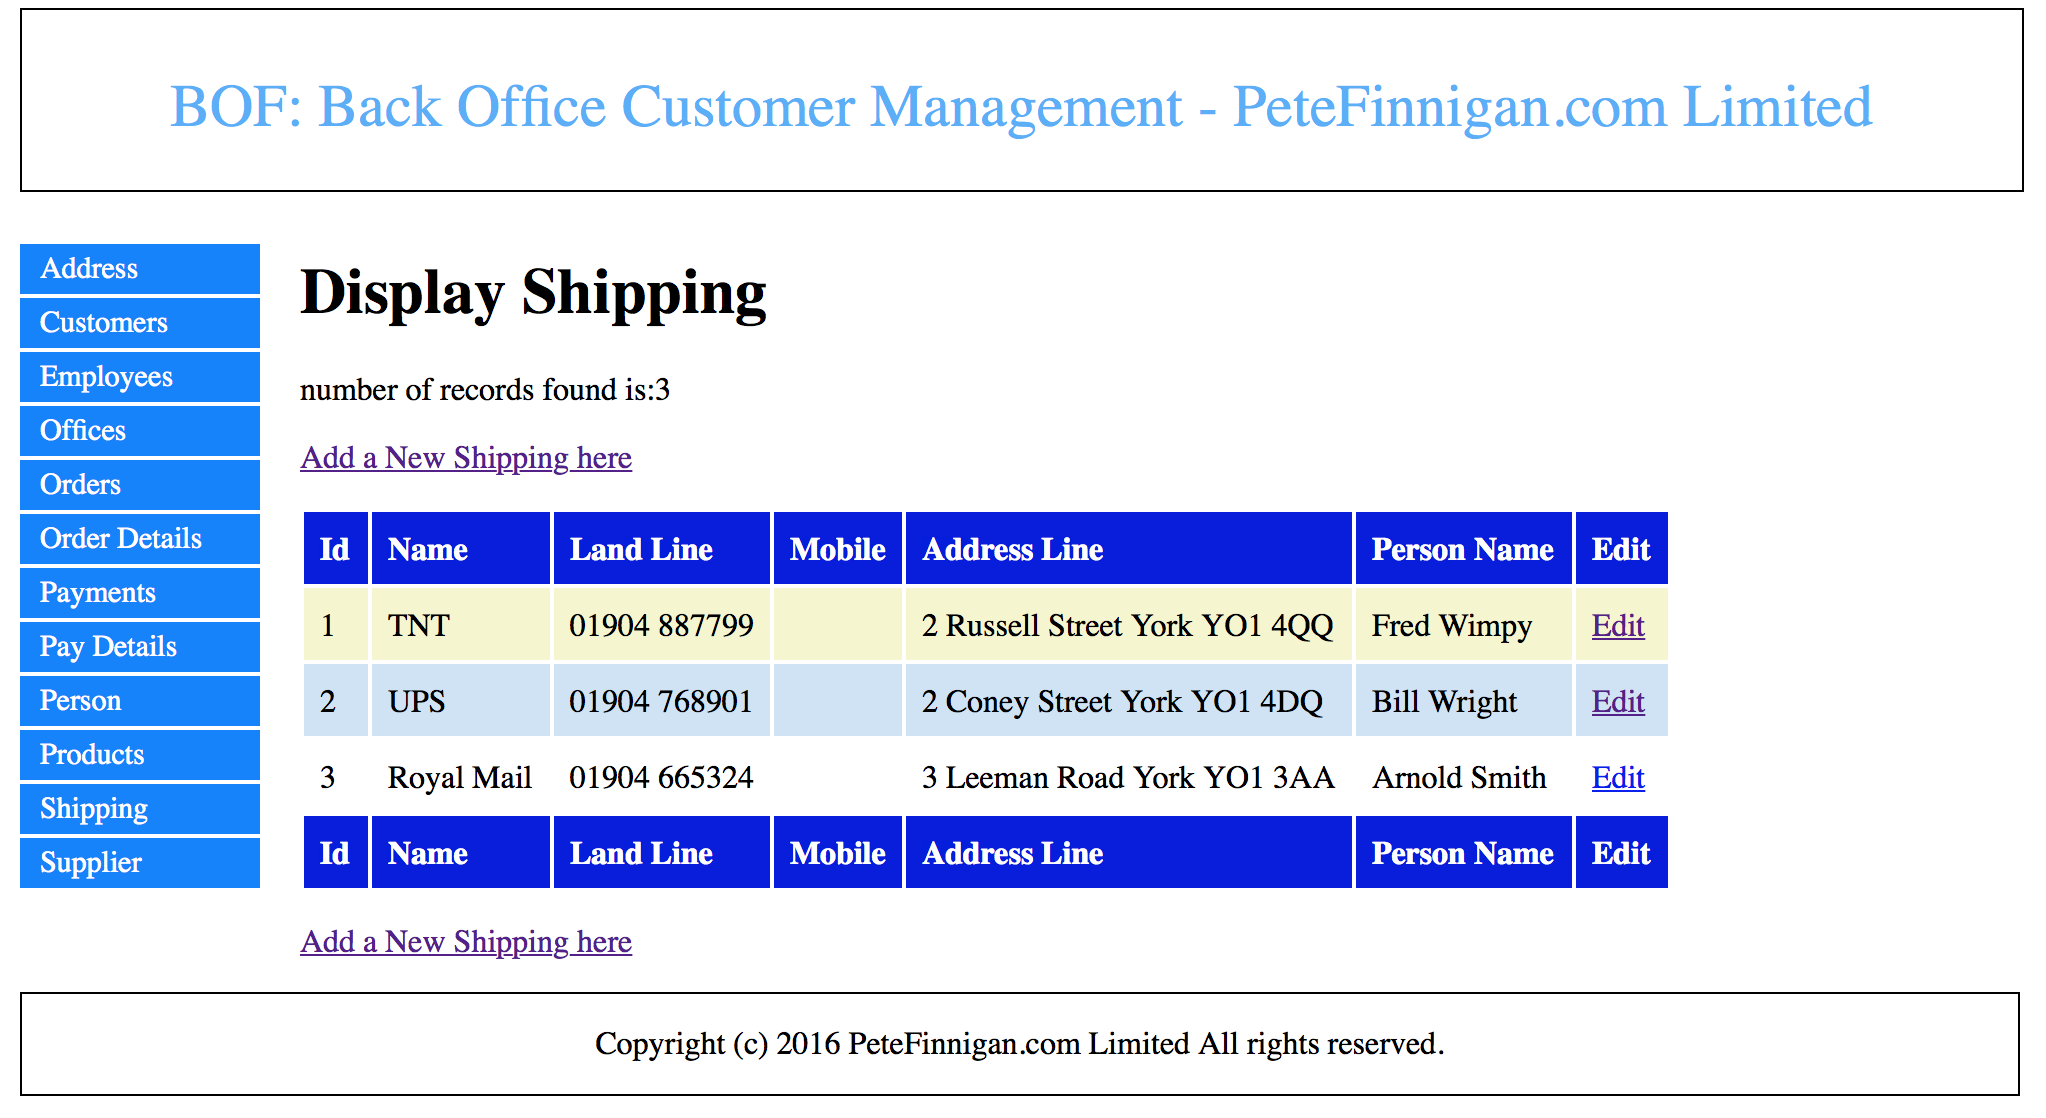 Screen to show all of the shipping records